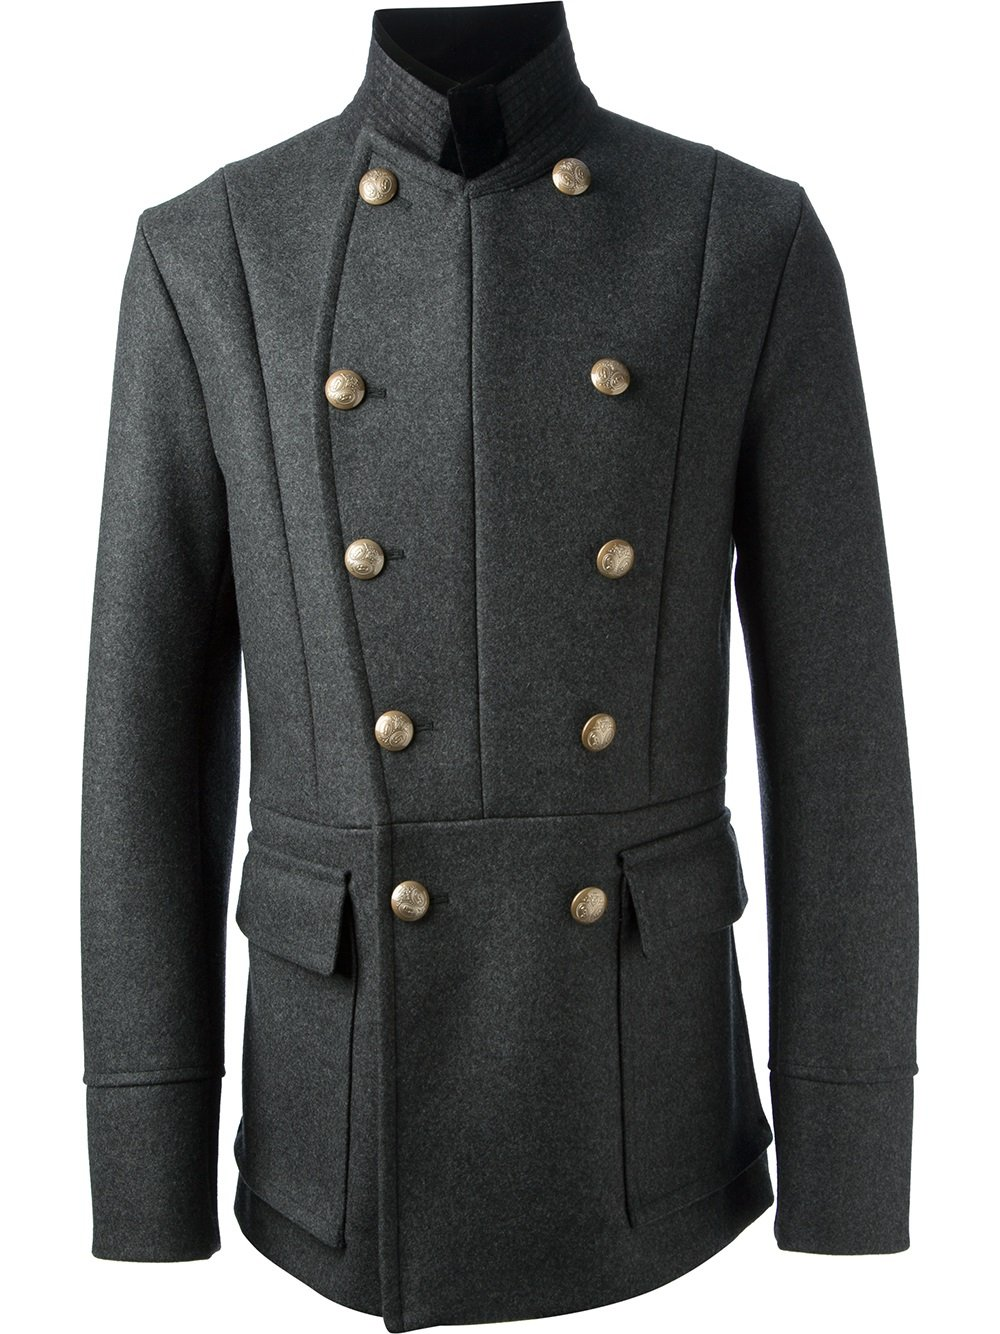 Mens Military Pea Coat | Down Coat